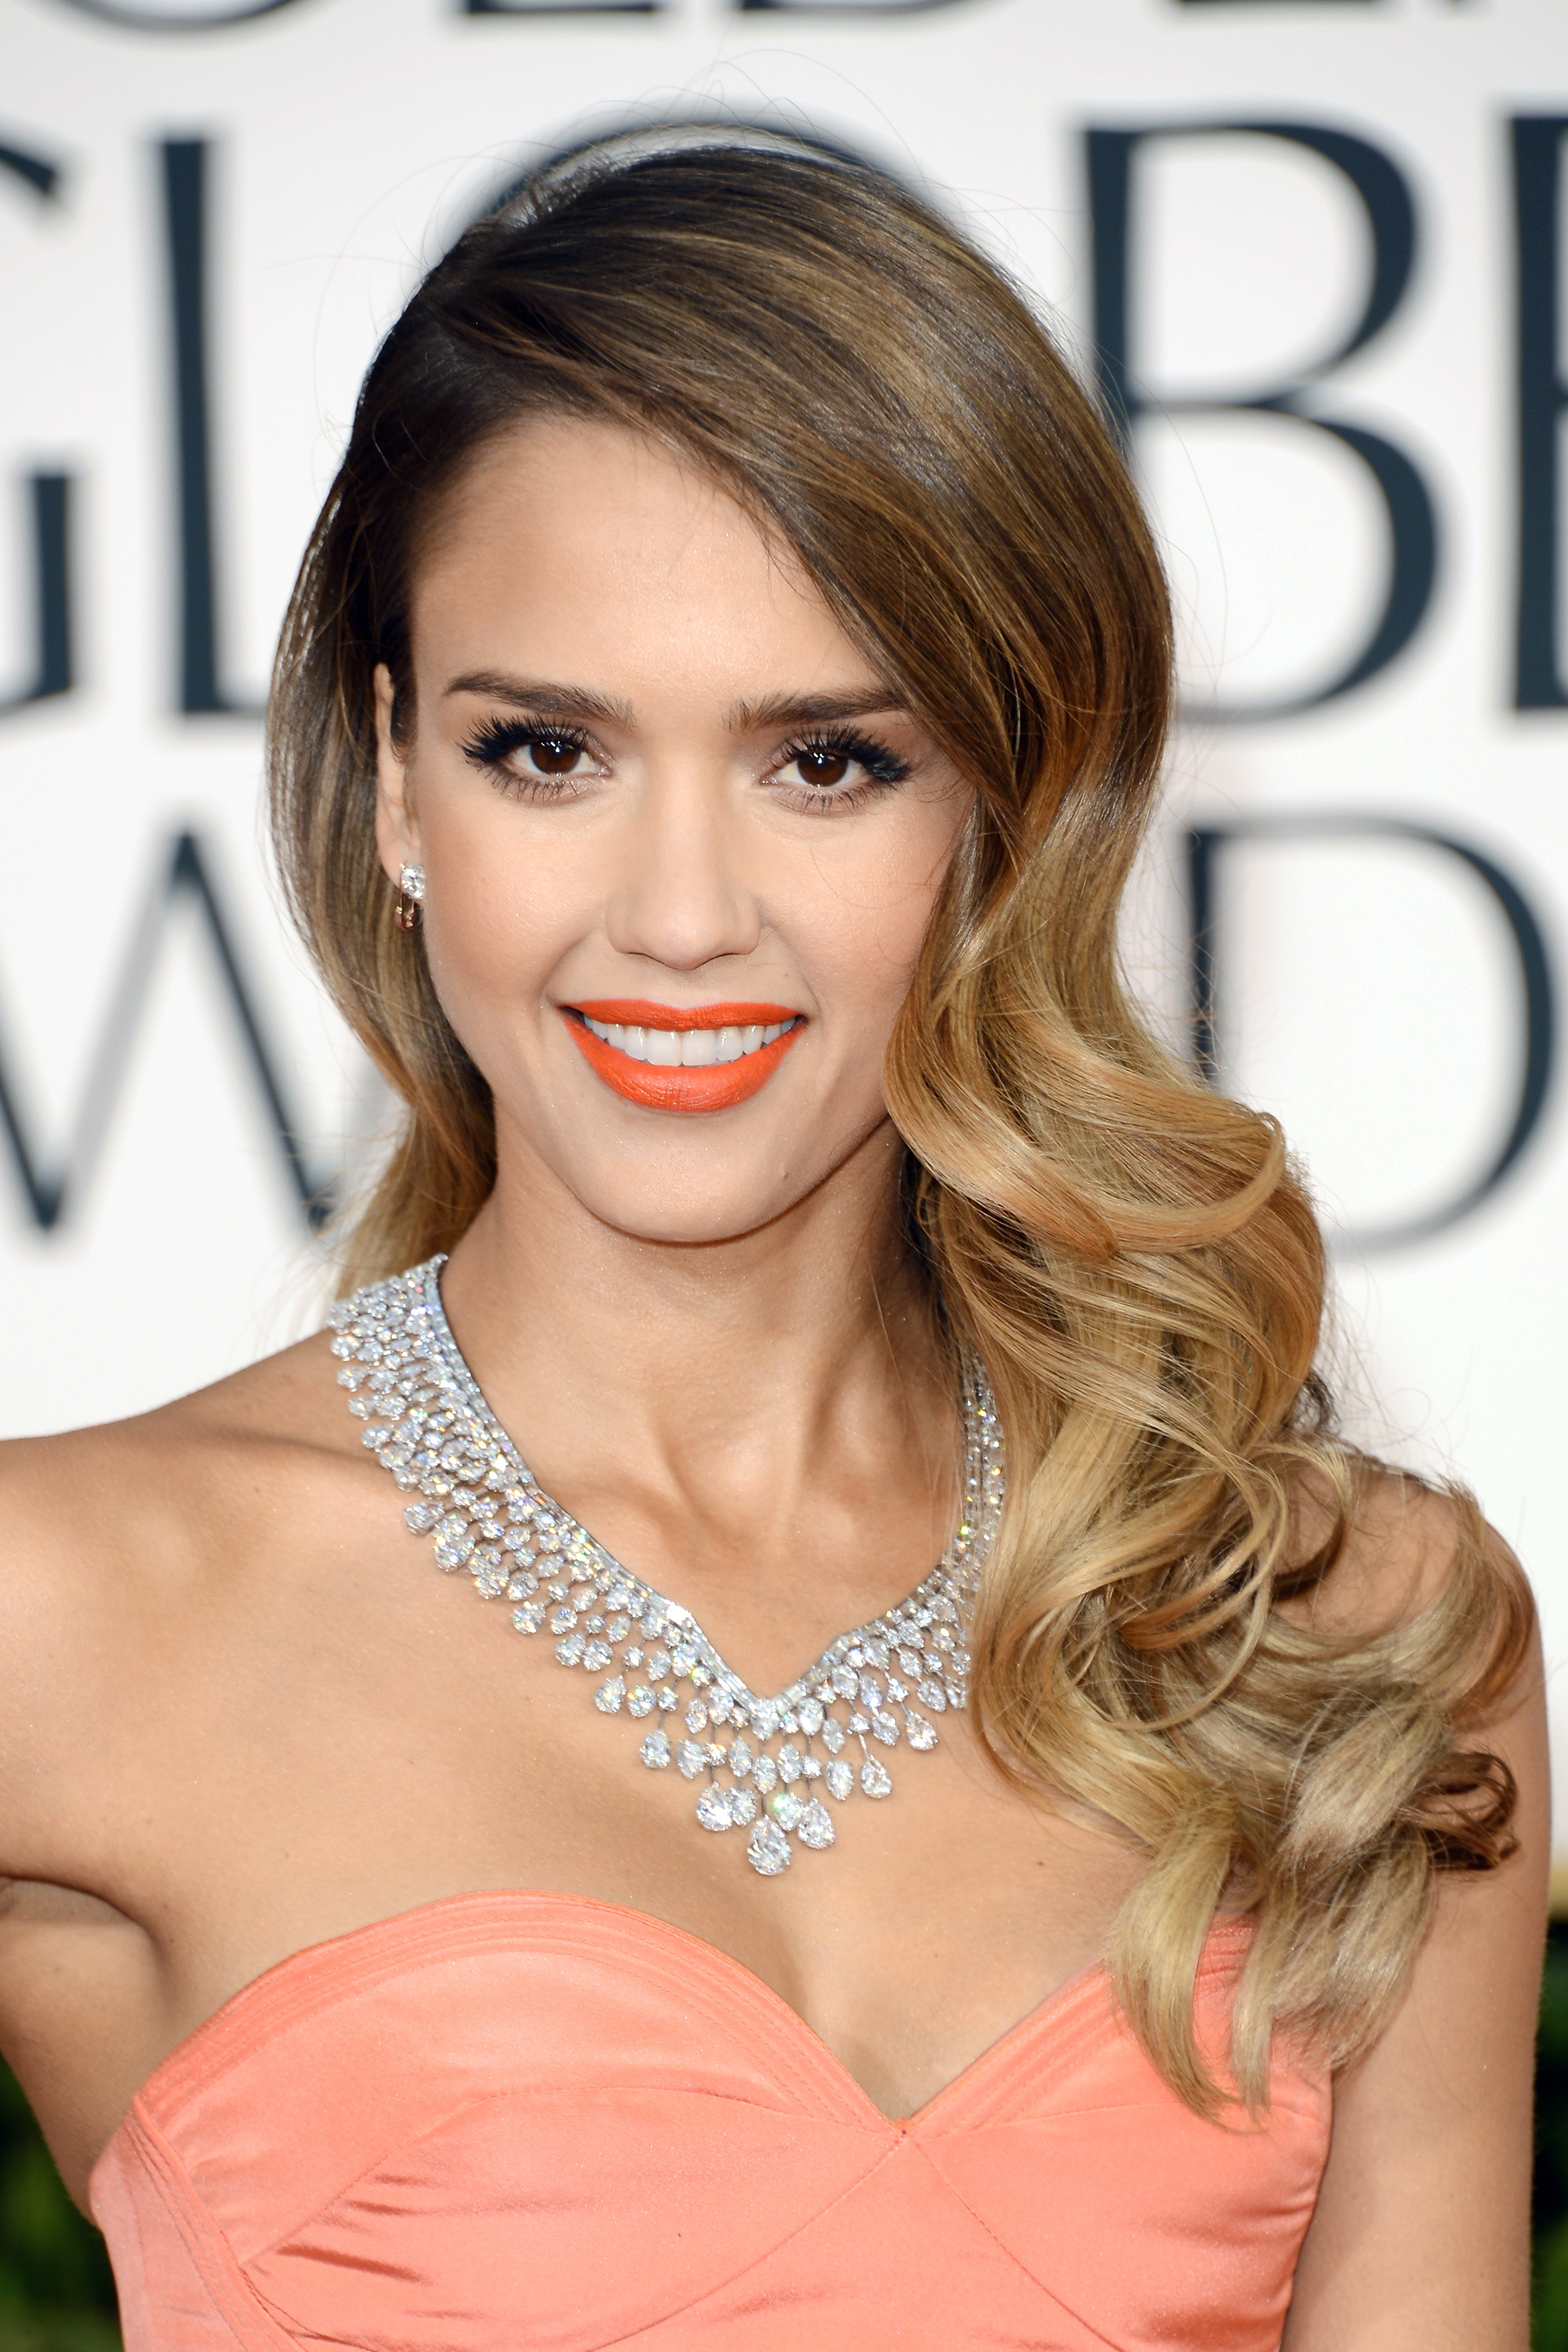 Actress Jessica Alba at the 70th Annual Golden Globe Awards on January 13, 2013 in Beverly Hills, California.